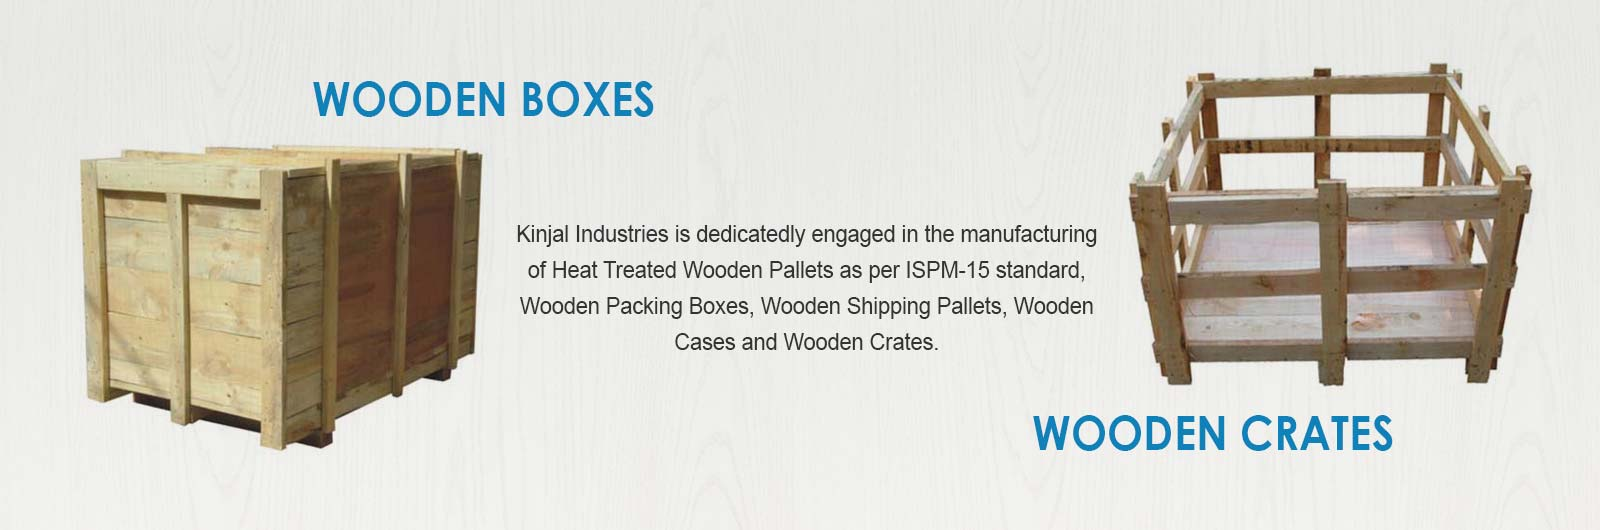 Wooden Boxes, Wooden Crates Manufacturers in Bhavnagar